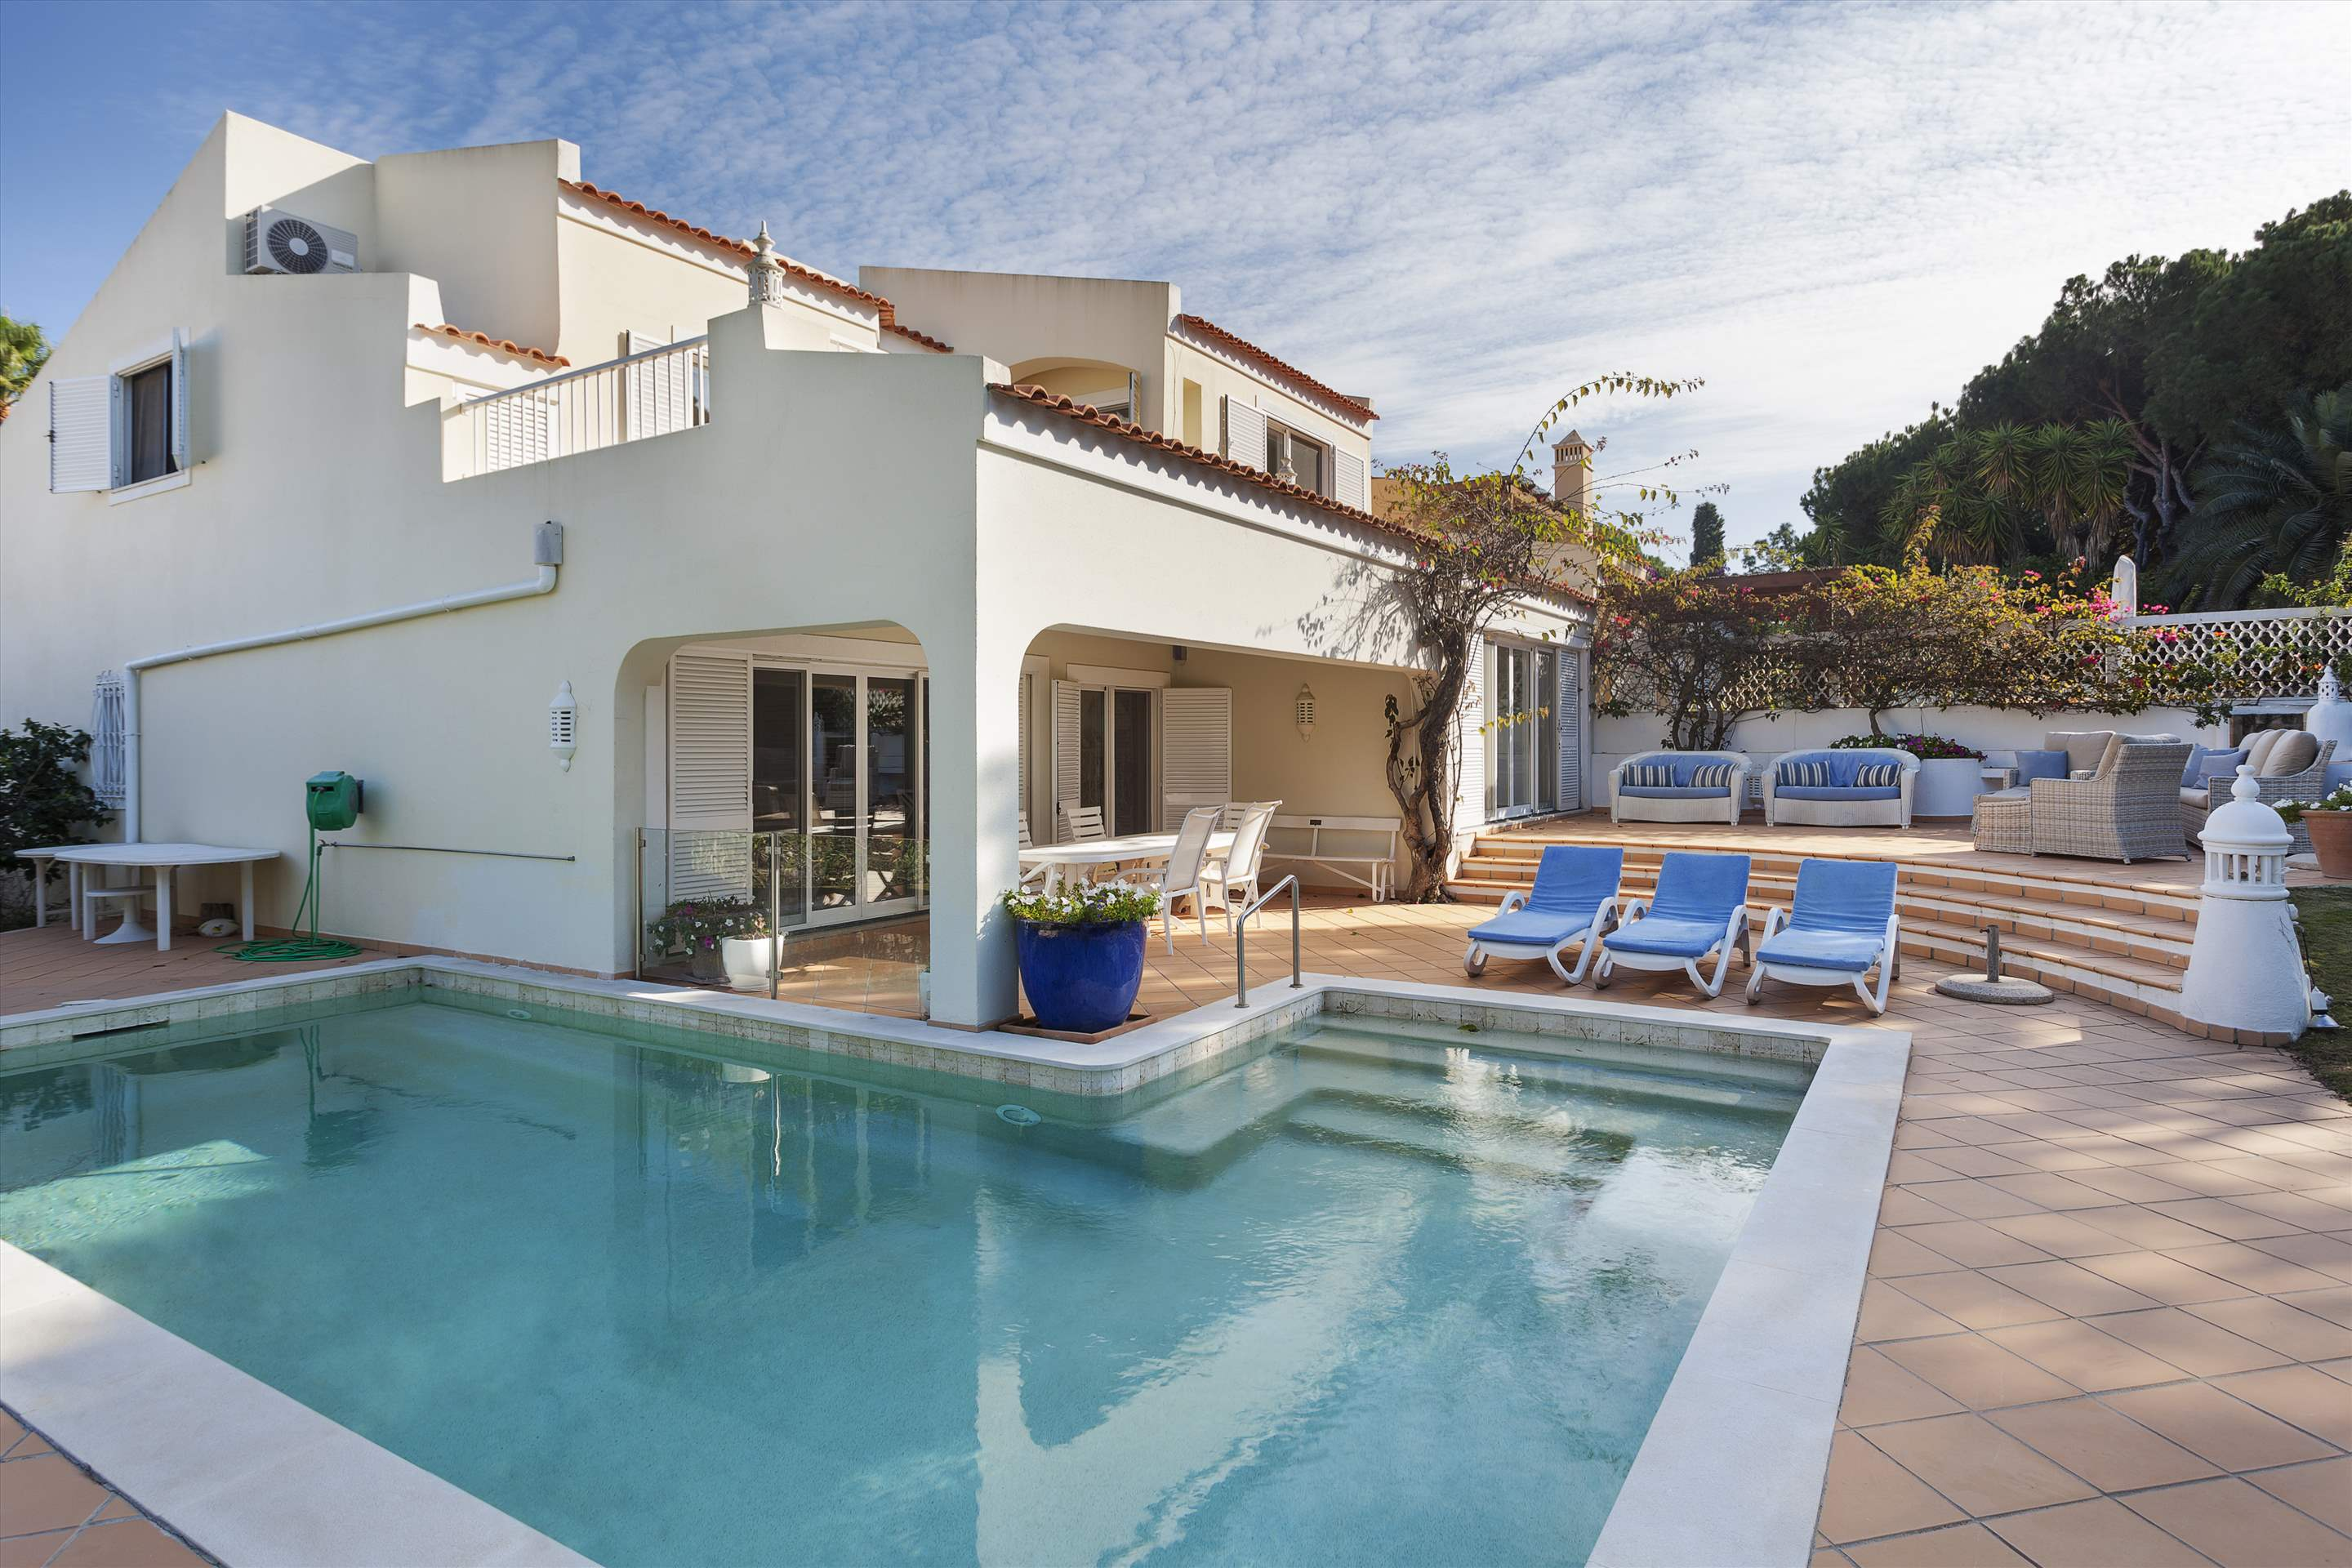 Villa Cascata, 4 Bedroom, 4 bedroom villa in Vale do Lobo, Algarve Photo #2